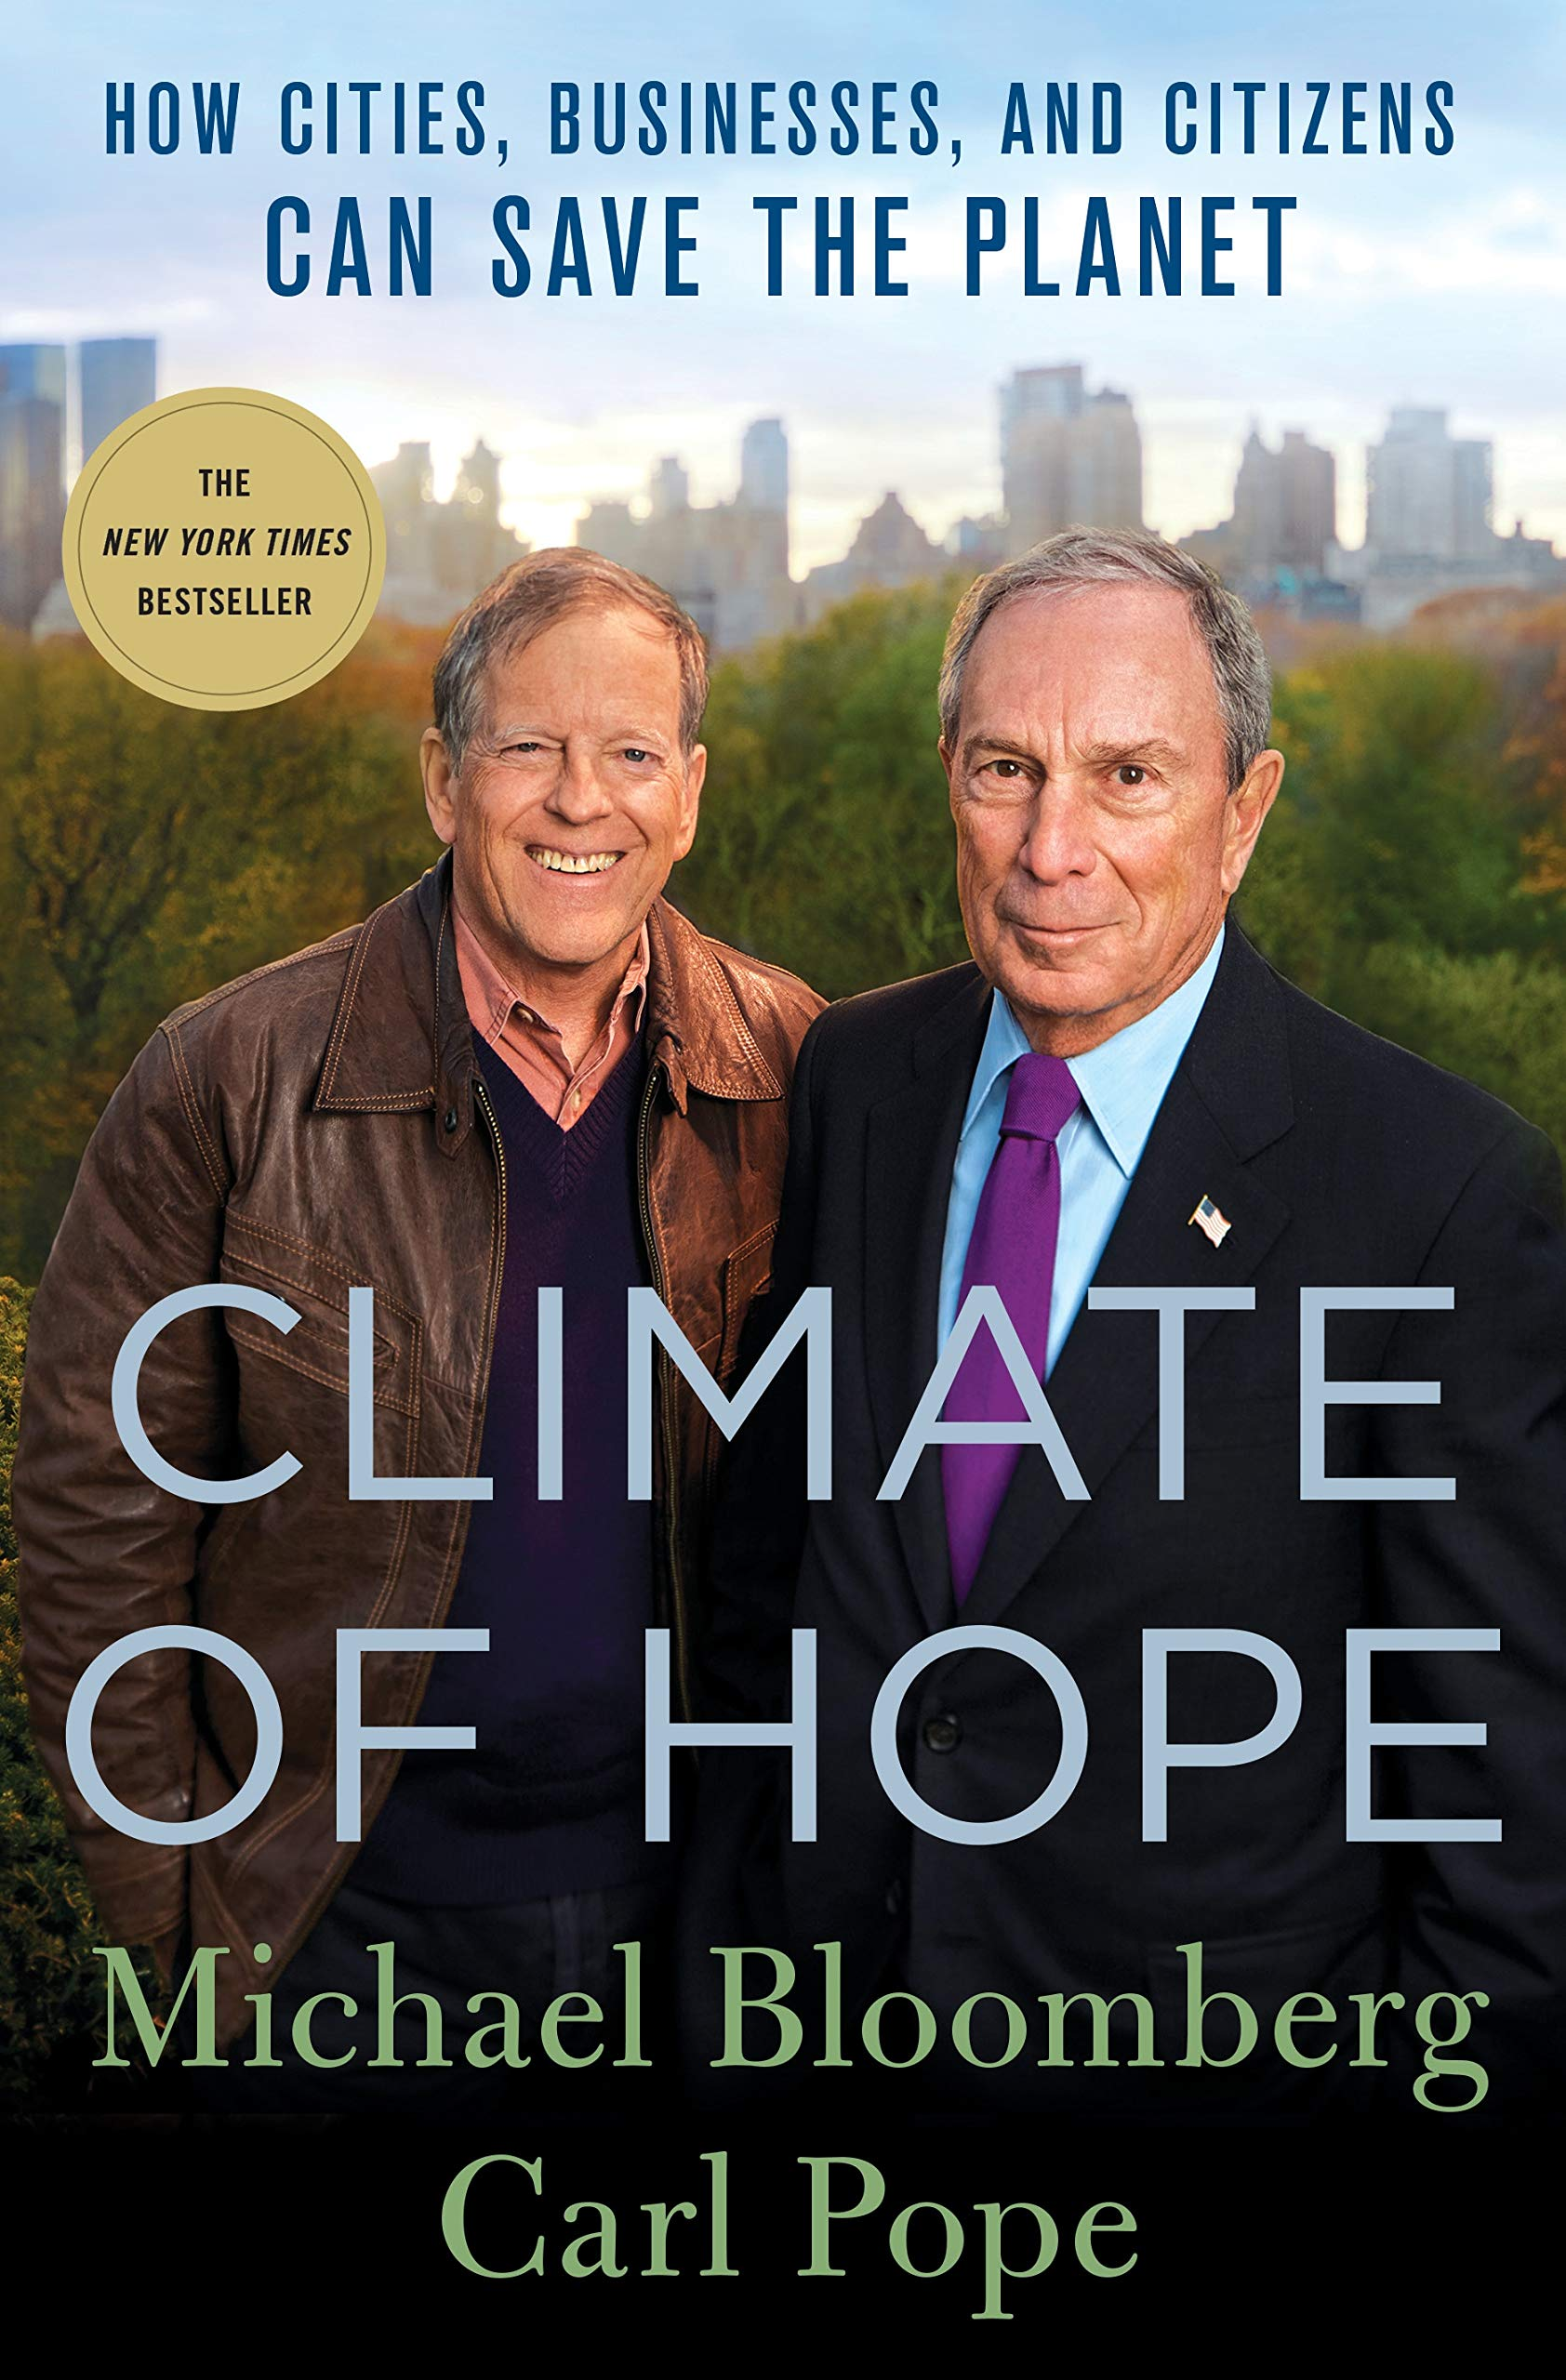 Amazon.com: Climate of Hope: How Cities, Businesses, and Citizens Can Save  the Planet (9781250142078): Bloomberg, Michael, Pope, Carl: Books